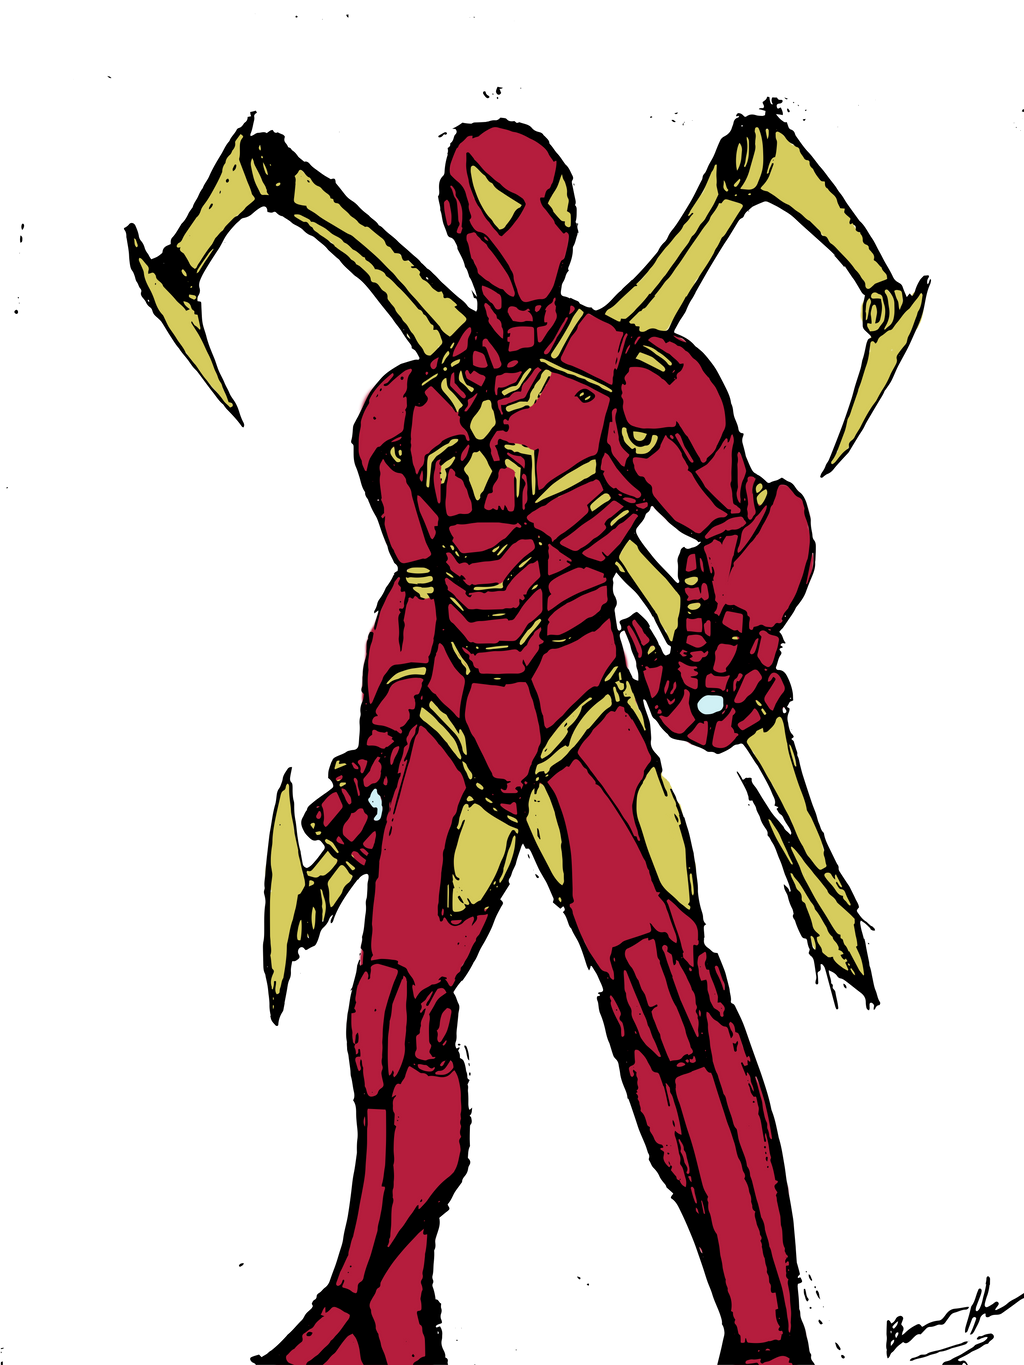 Iron Spider (Color Request) by edCOM02 on DeviantArt